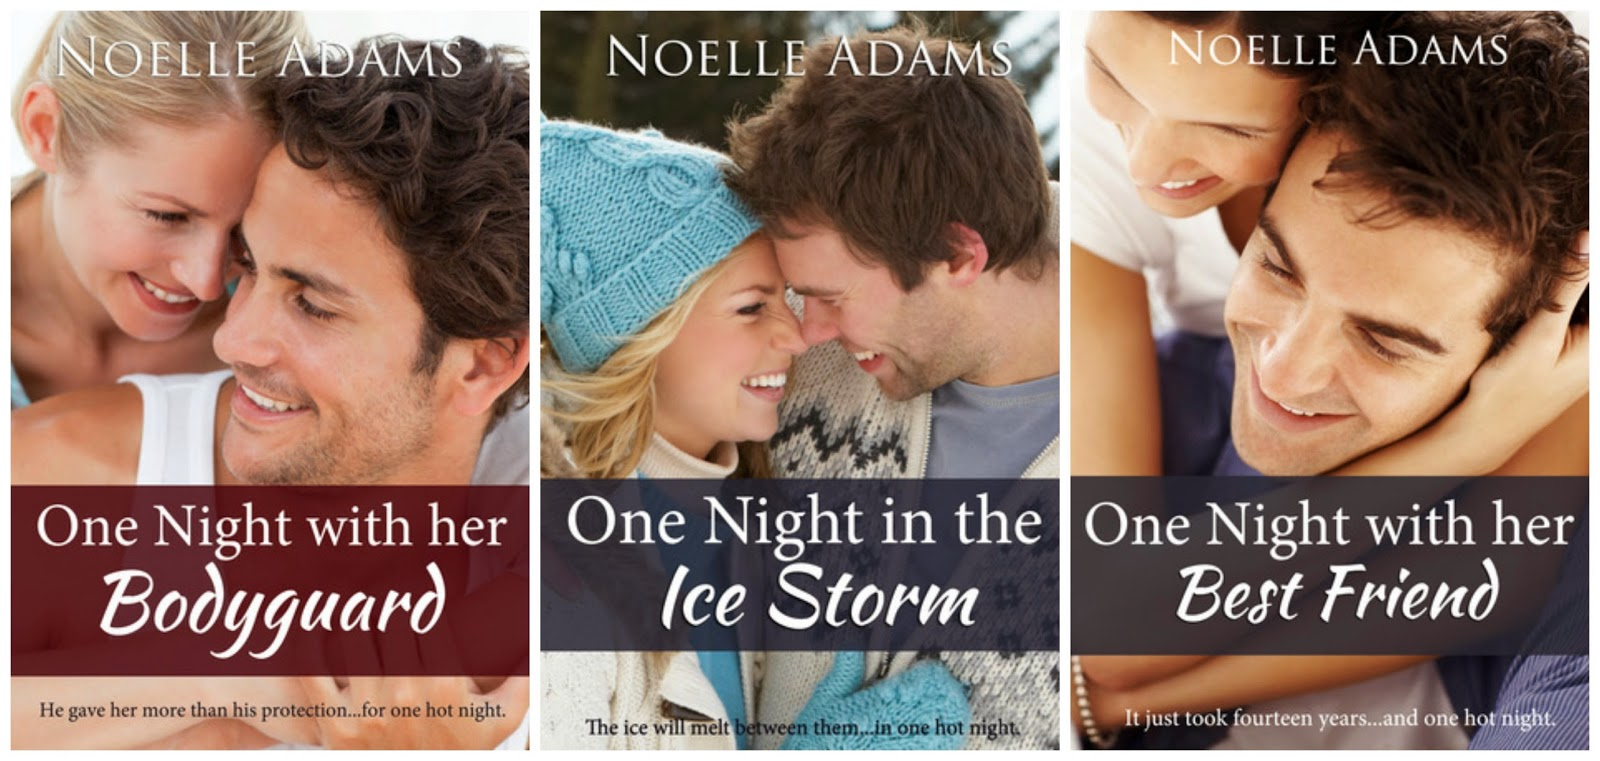 Book covers - One Night novellas by Noelle Adams